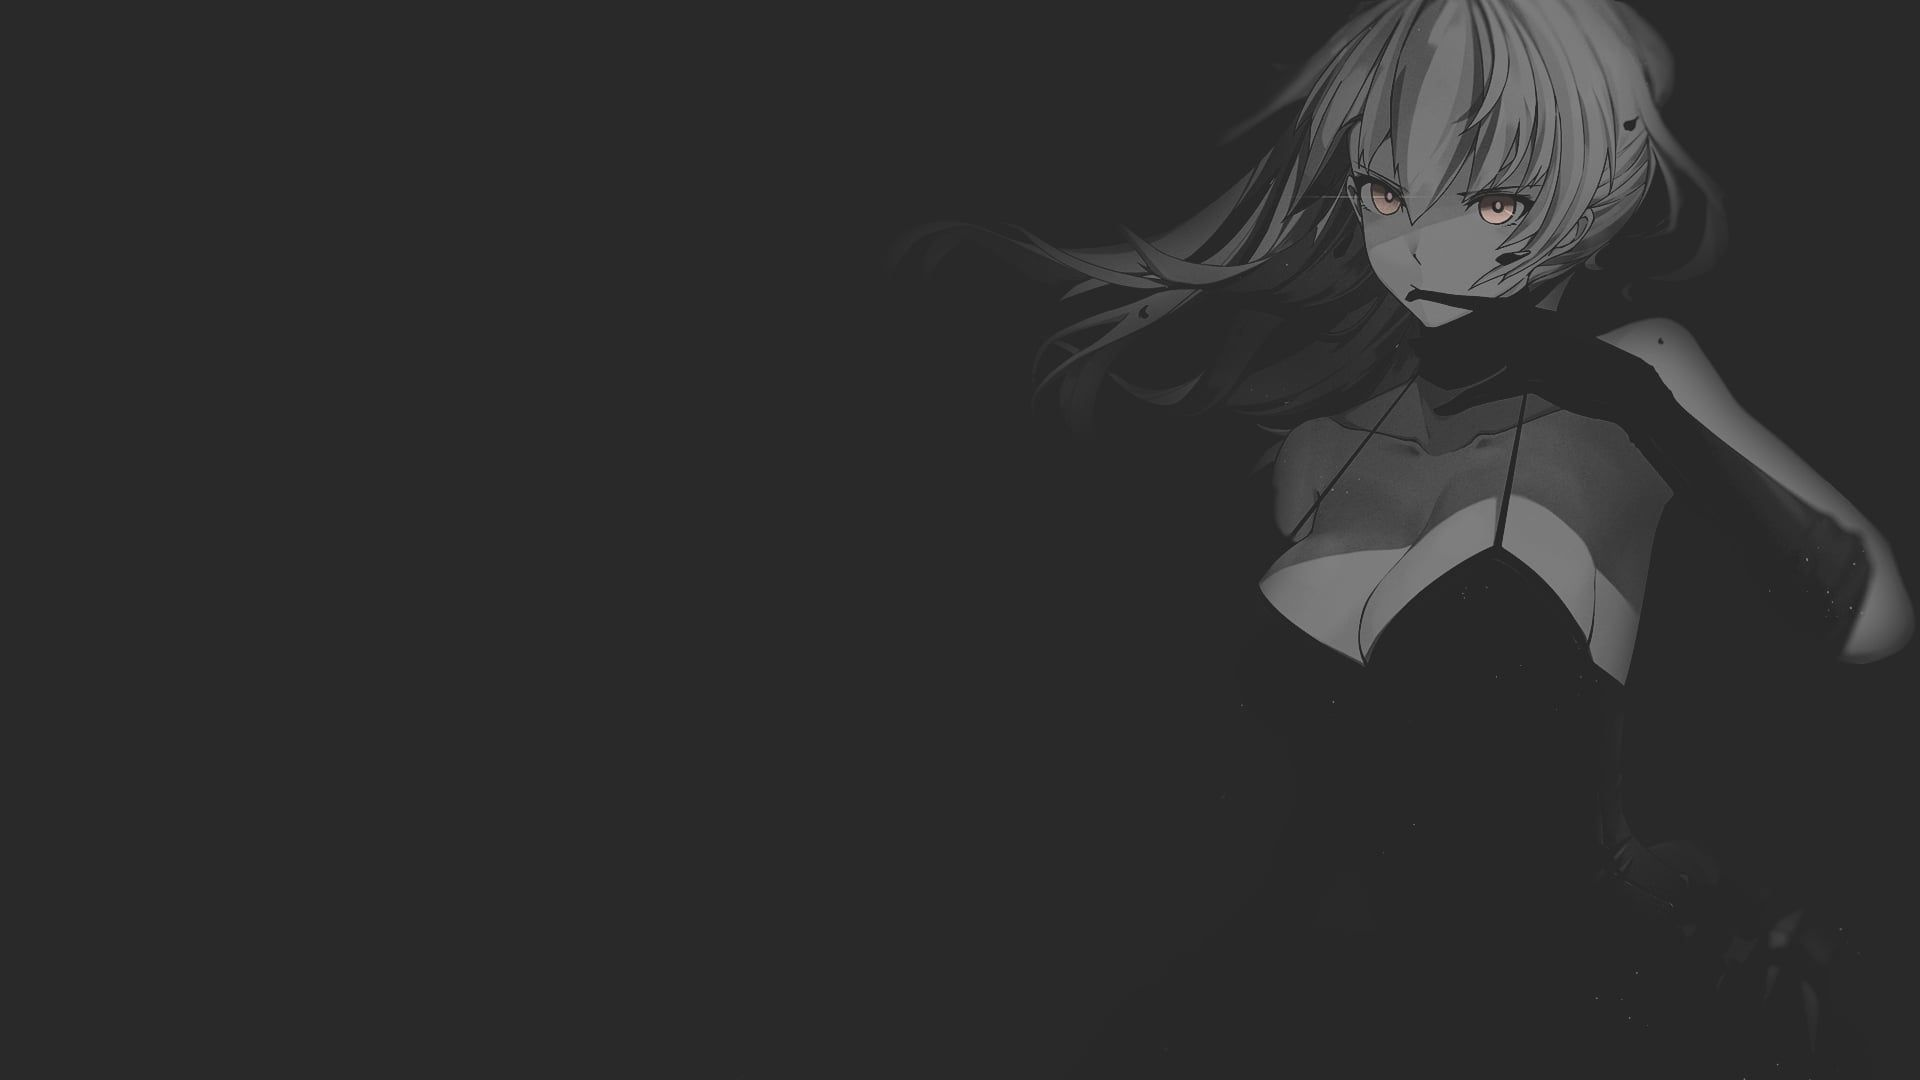 Wallpaper Fate Stay Night Anime Illustration Minimalism Texture Black Background In 2020 Anime Monochrome Anime Background Anime Wallpaper